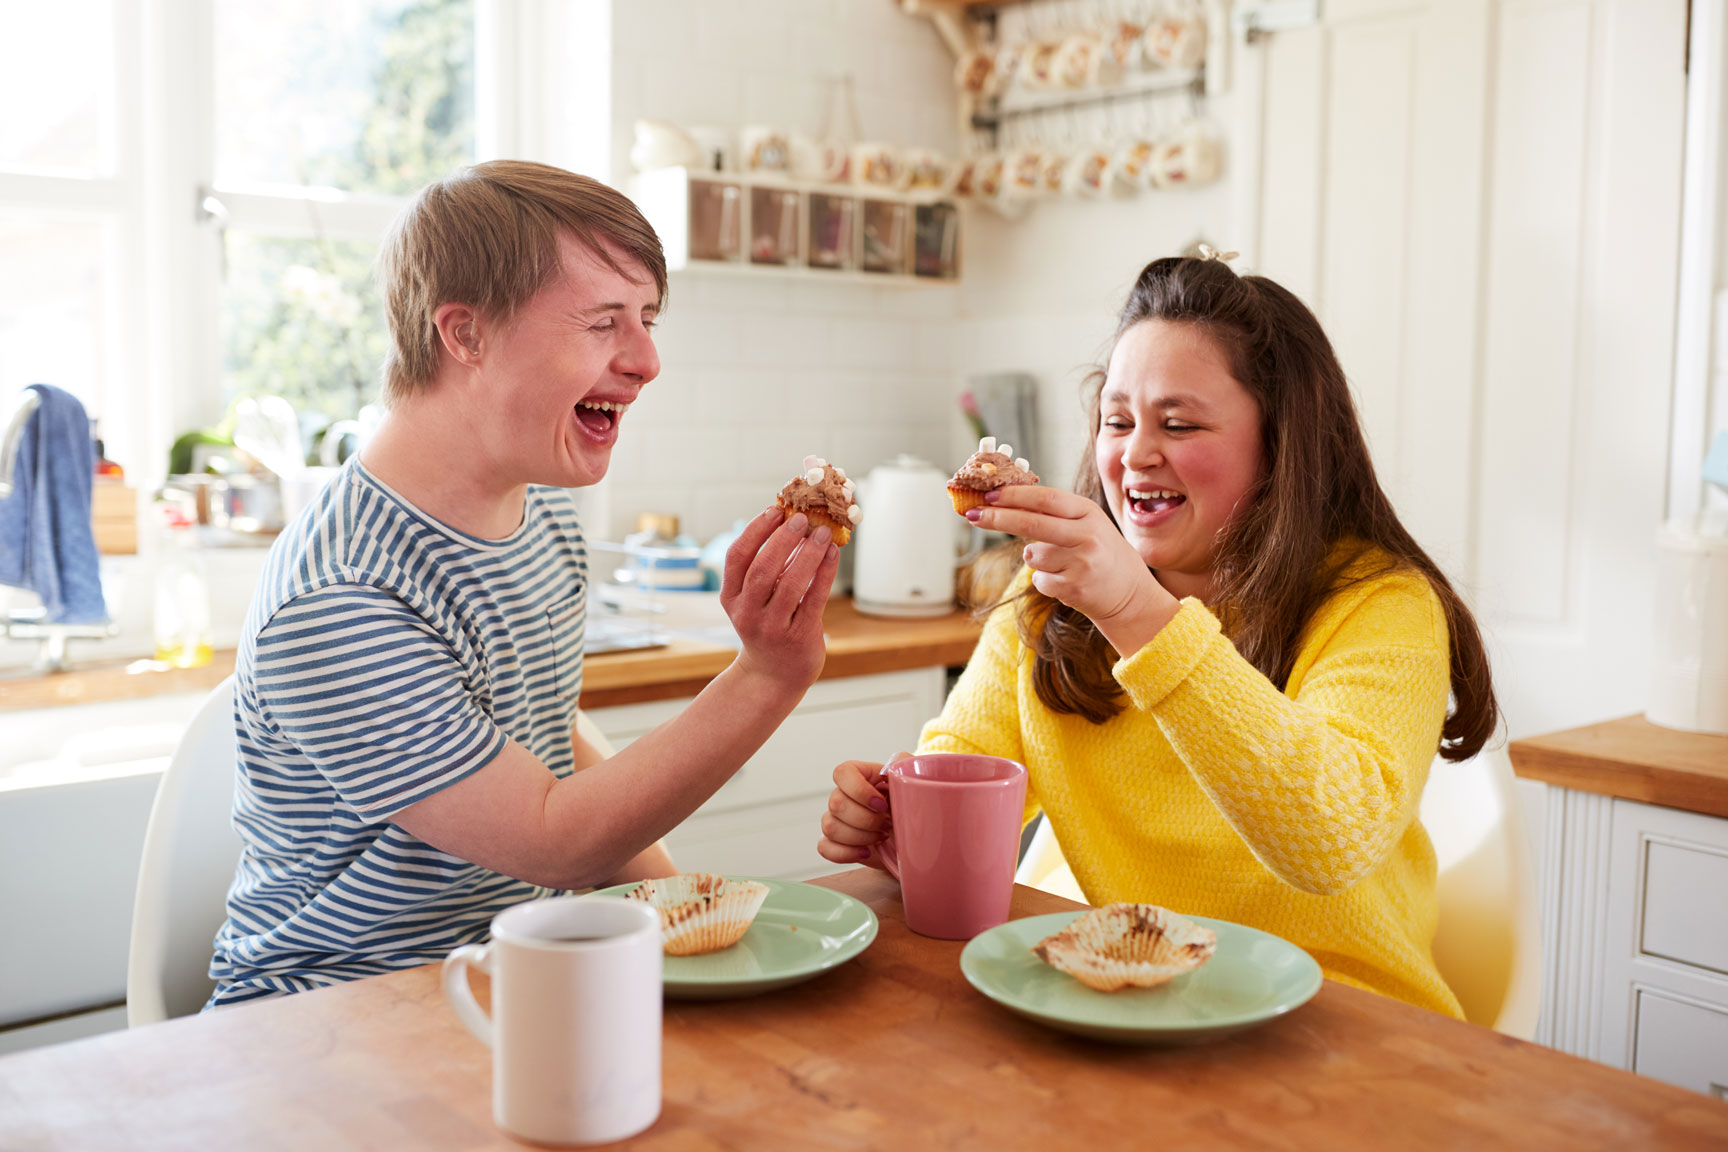 Boy with Down Syndrome eating muffins with a caretaker.